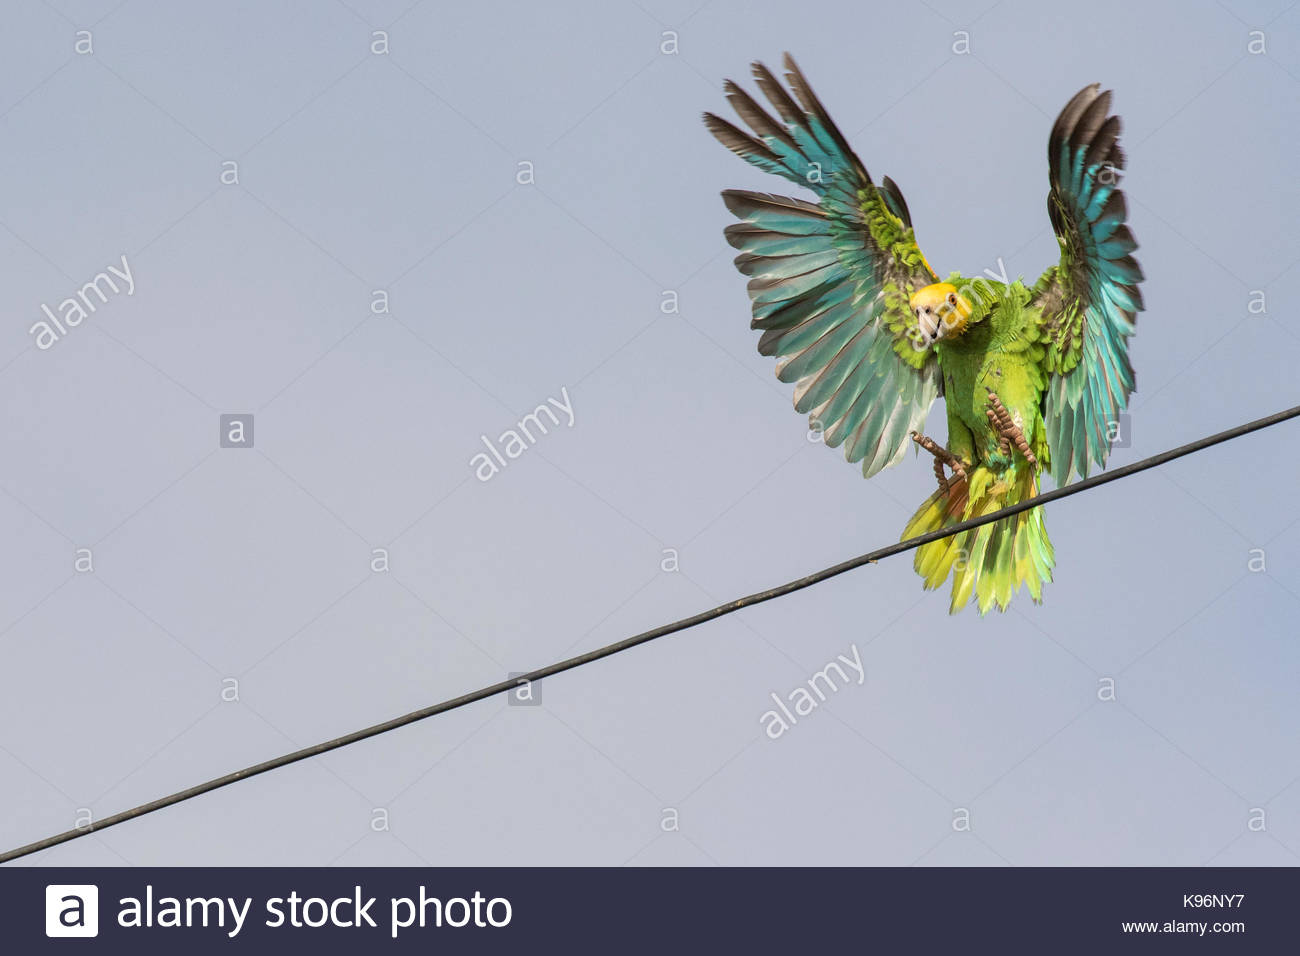 A yellow-shouldered amazon parrot, Amazona barbadensis, landing on a telephone line in the town of Rincon. - Stock Image